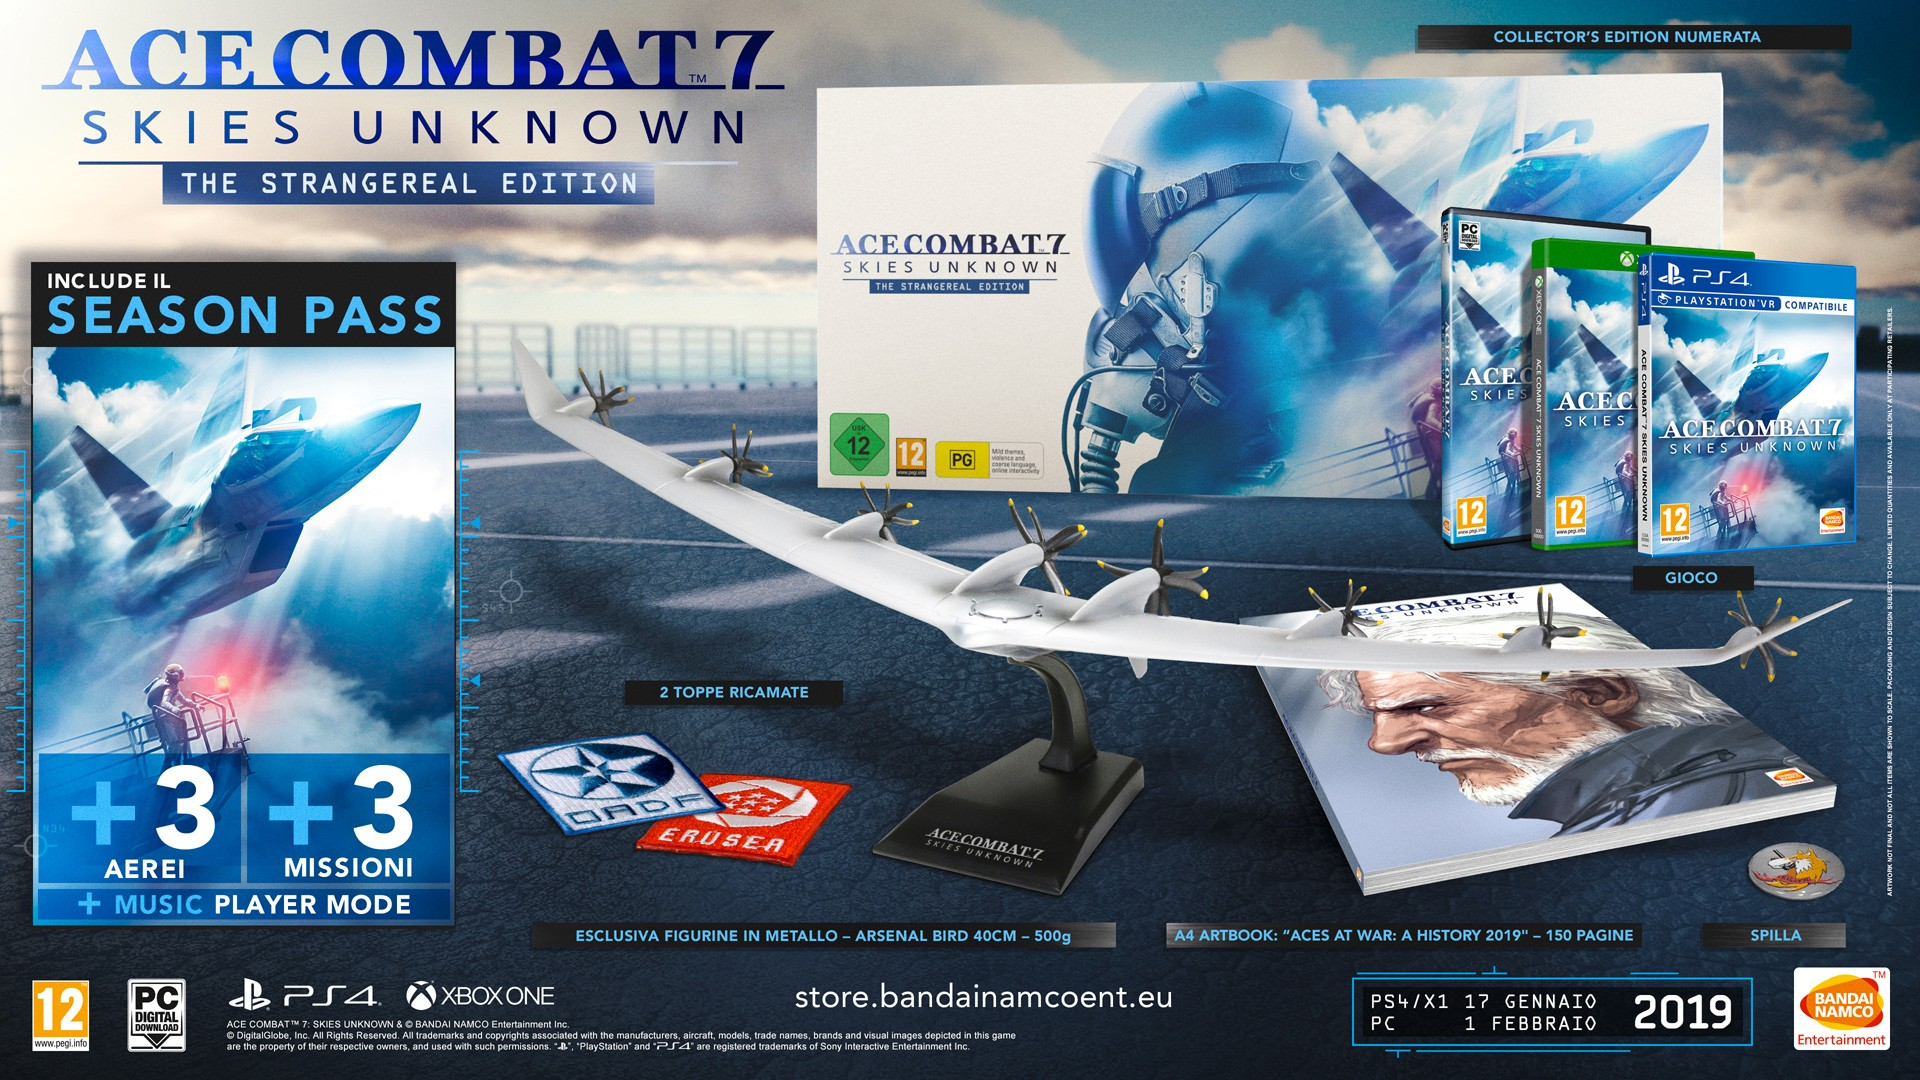 ACE COMBAT 7: SKIES UNKNOWN - Collector's Edition